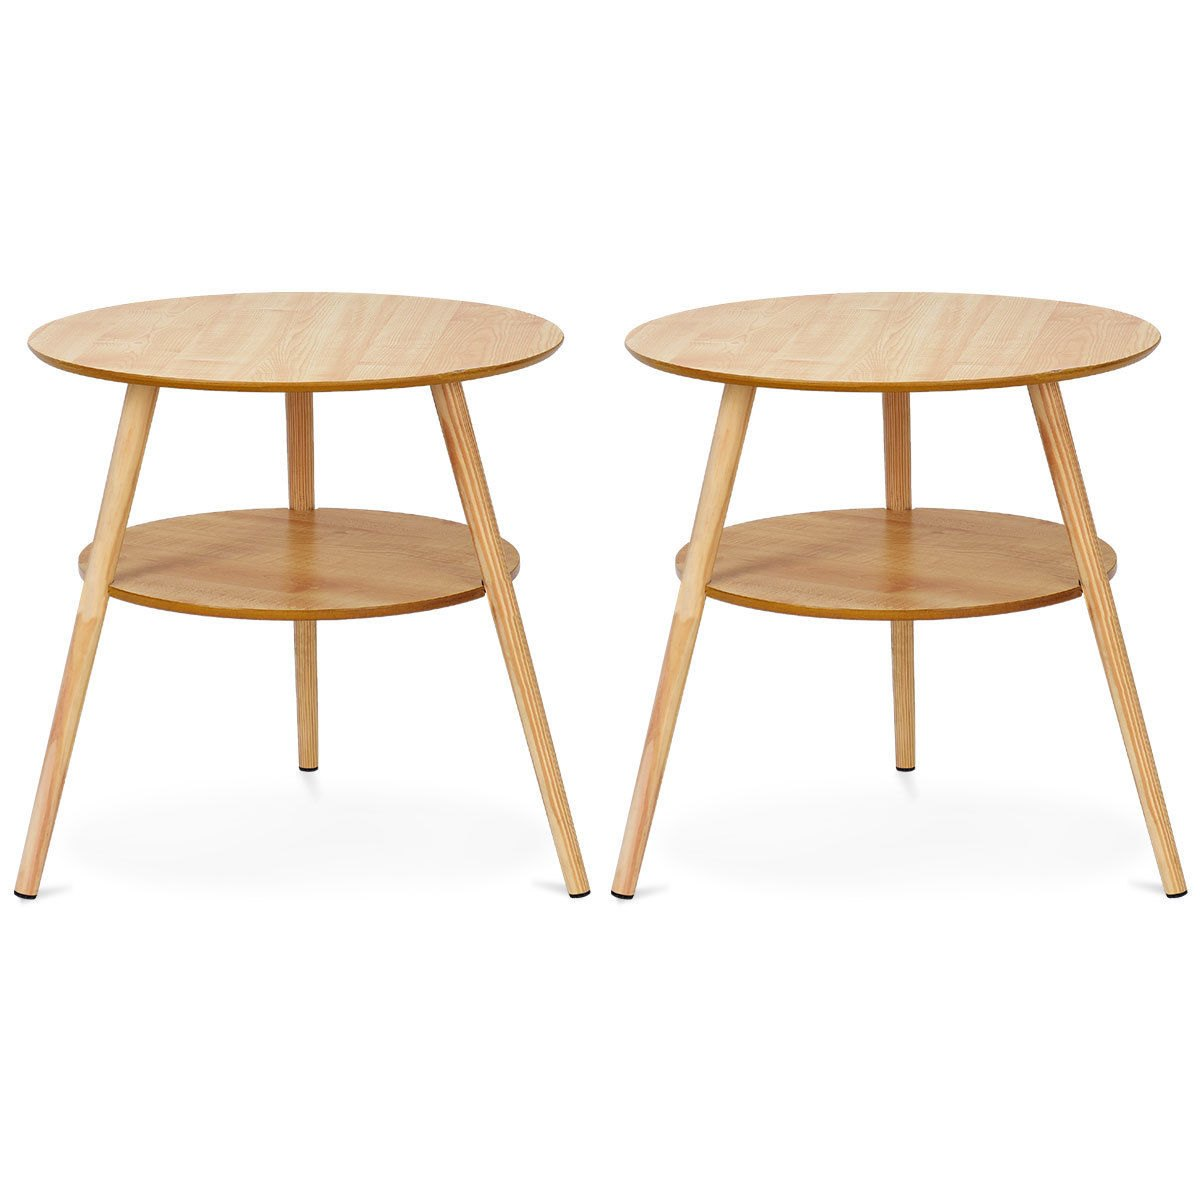 way goplus set round end coffee table side accent wood tier legs living room lamp shades patio covers canadian tire dining chairs best designs classic furniture design bottle wine